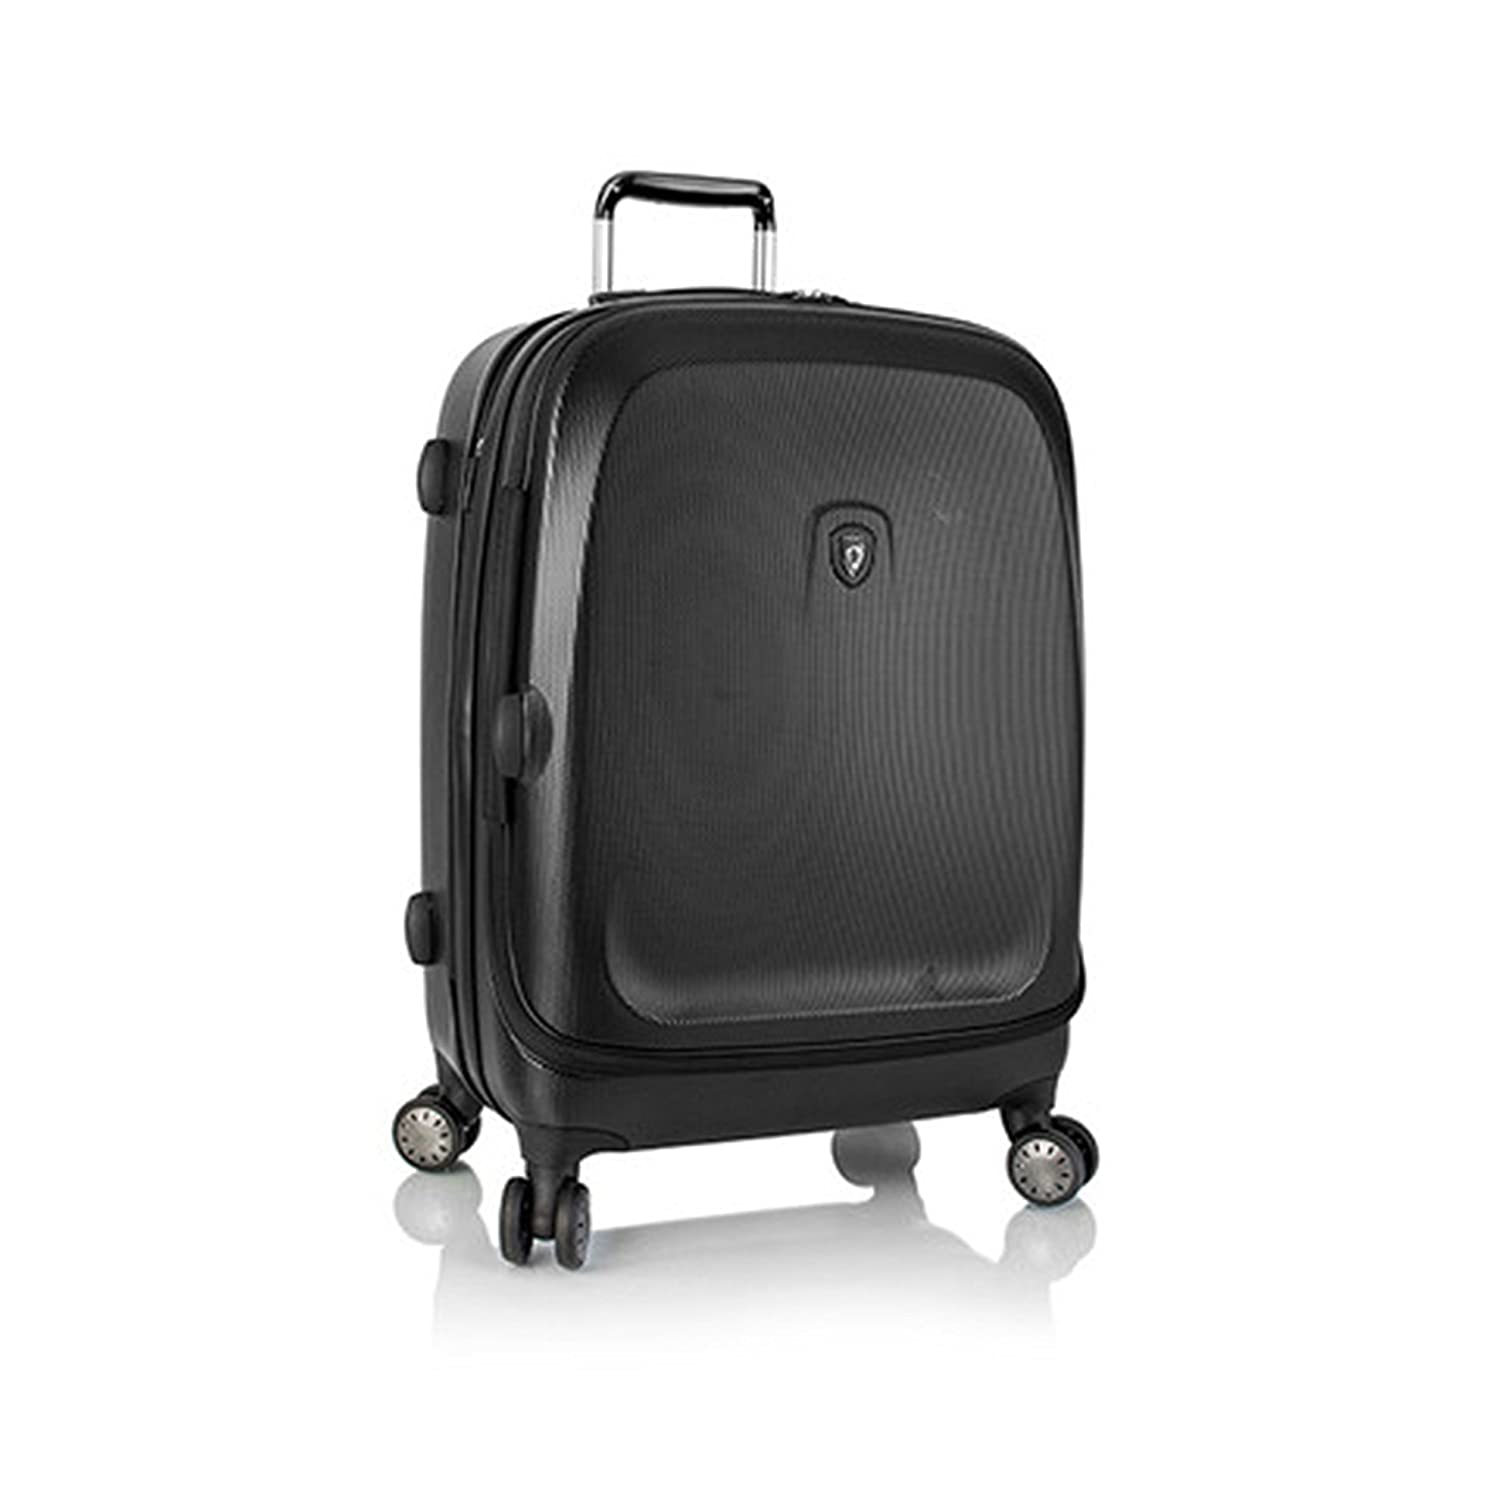 ... 50% SALE ... PREMIUM DESIGNER Hartschalen Koffer - Heys Crown Smart Gateway Schwarz Trolley mit 4 Rollen Medium